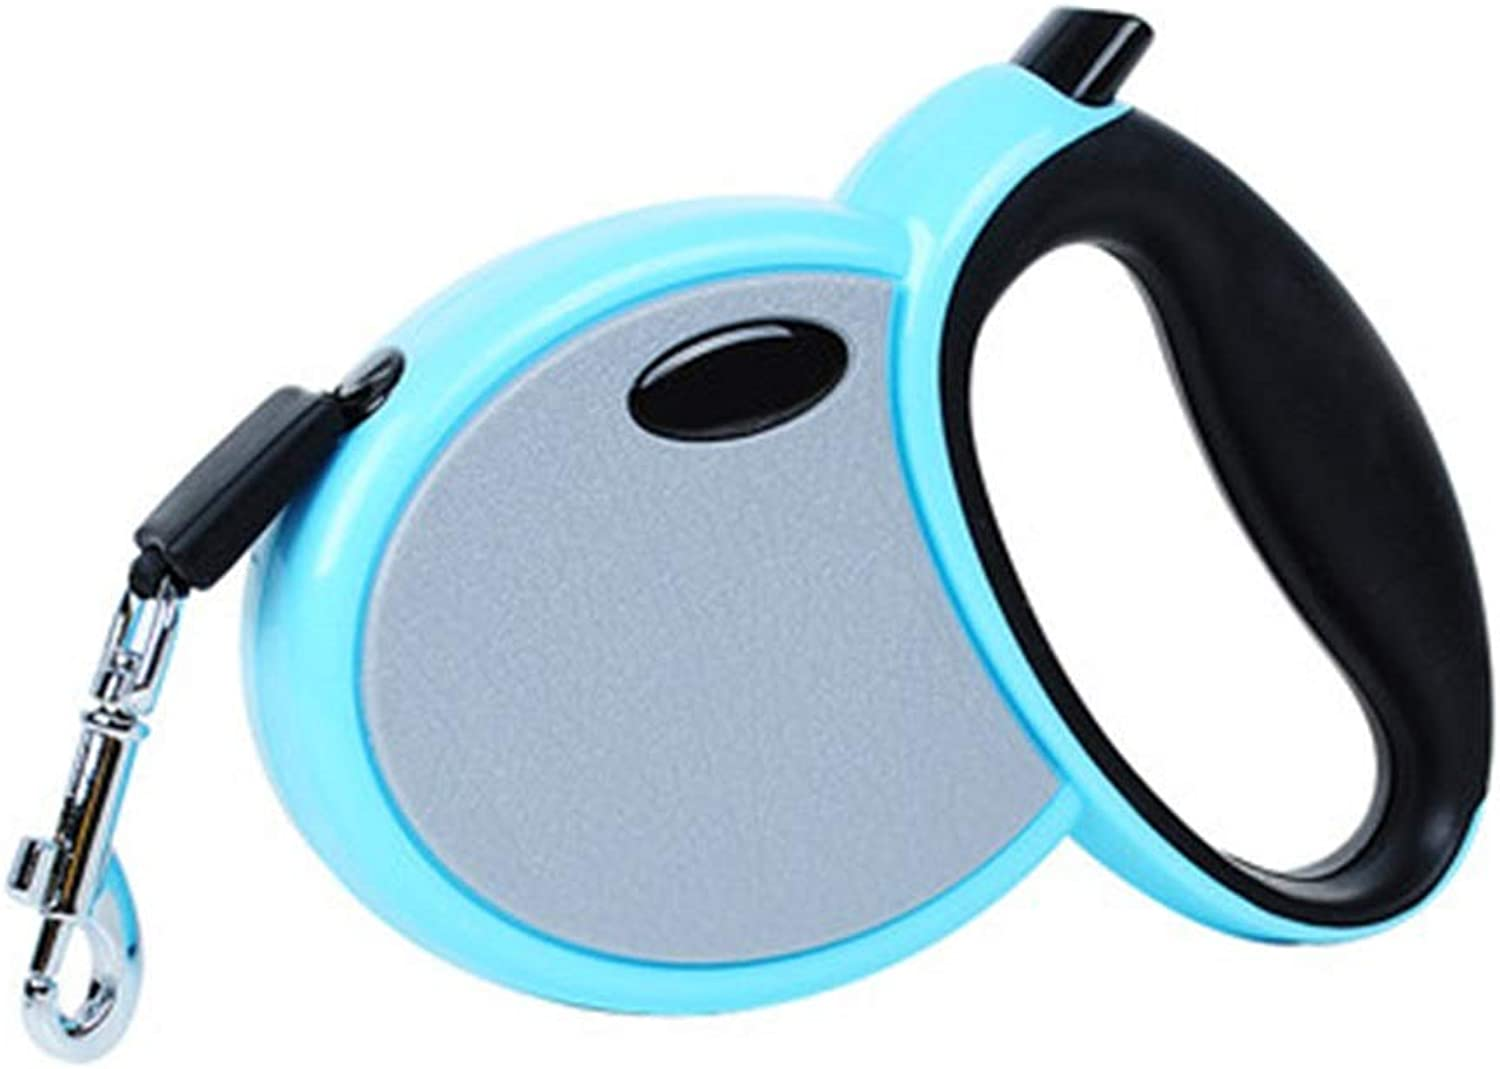 Retractable Dog Strap, Dog Walking Leash,for Small Dogs,no Tangles,oneButton Locking,Suitable for Dogs Within 7.510kg (color   bluee, Size   3m)